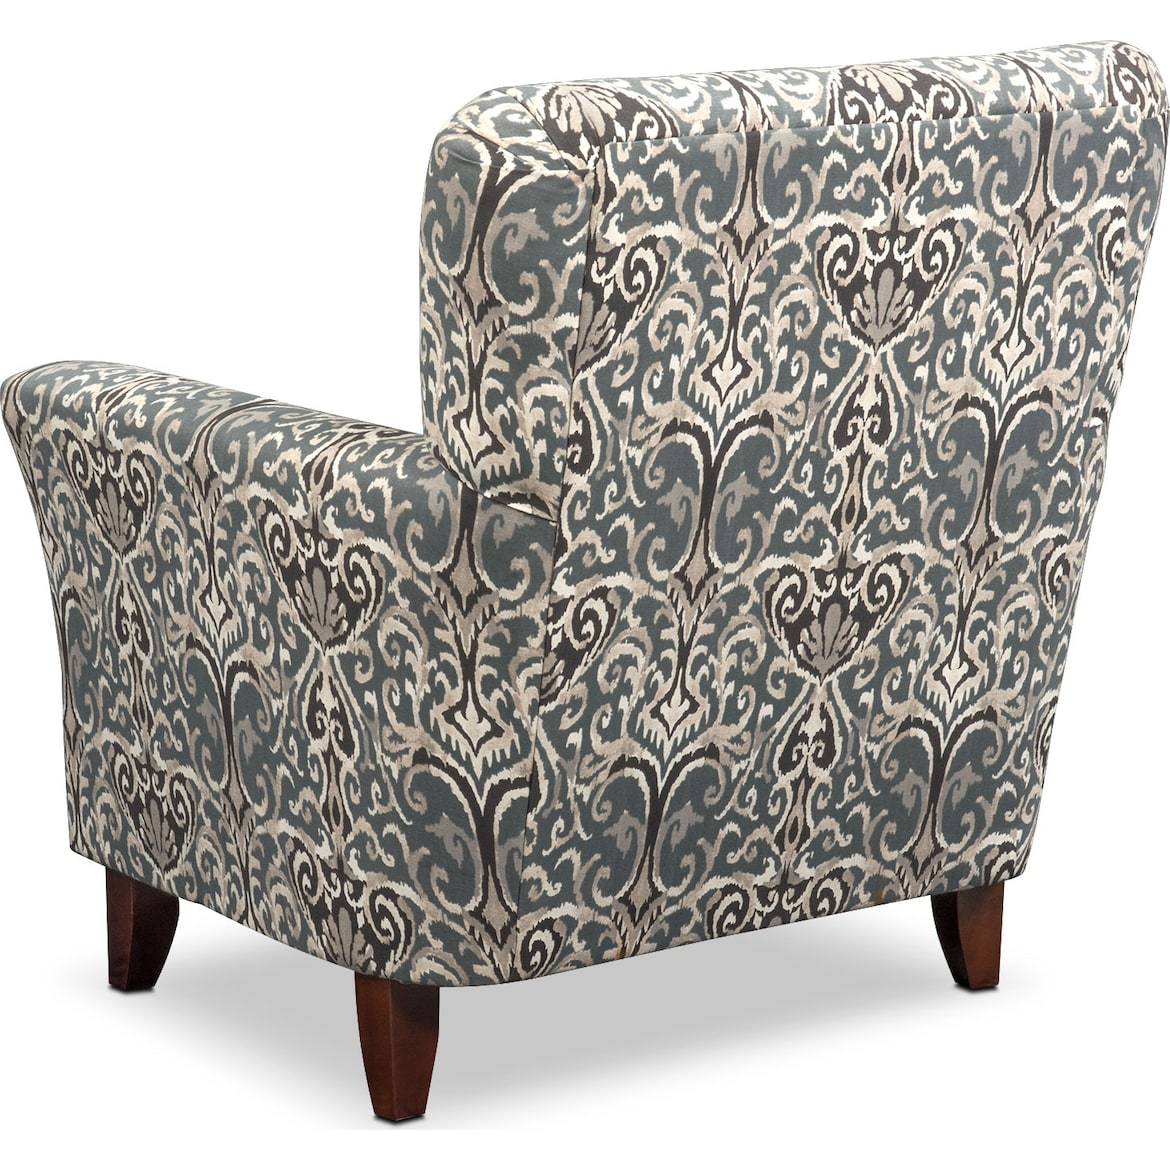 Carla Gray Accent Chair I Value City Furniture: Carla Accent Chair - Gray